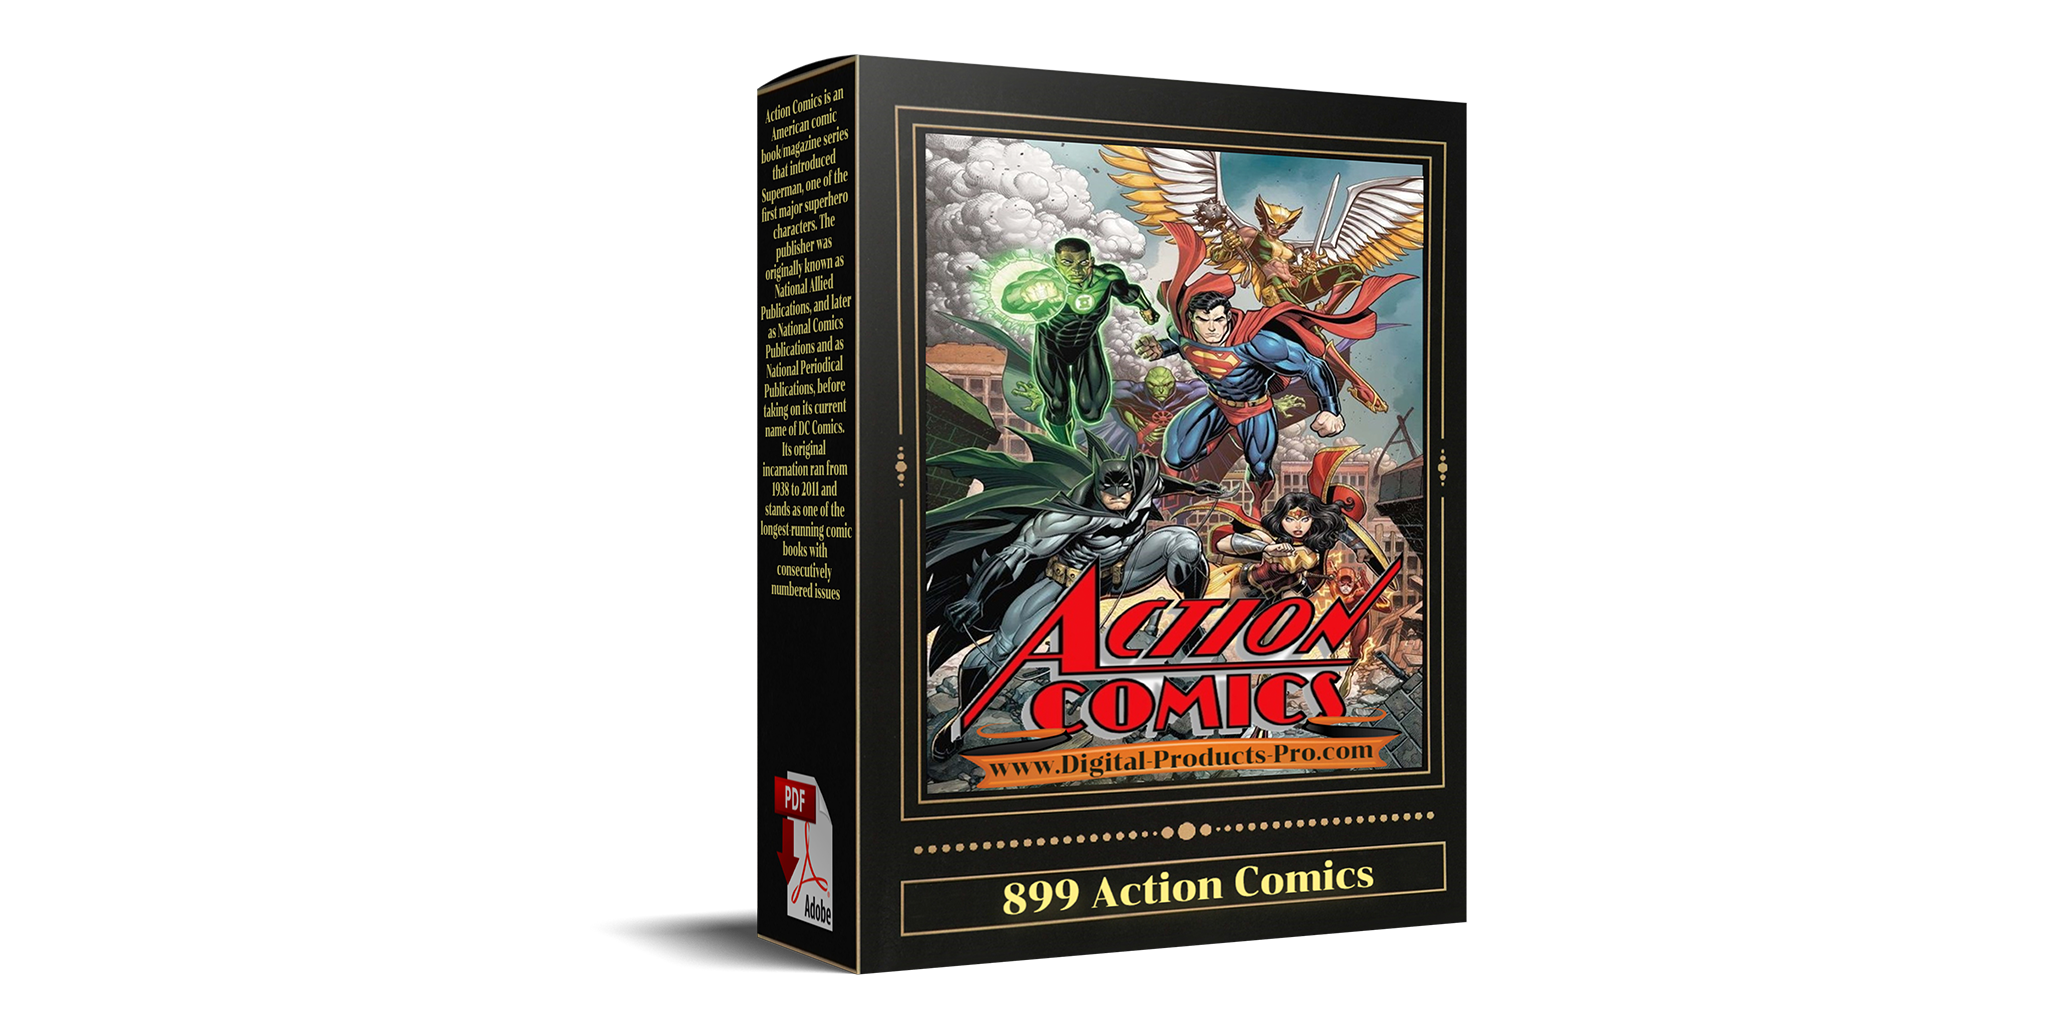 899 Action Comics,  SUPERMAN,  Full Editions,  BONUS,  12 GigaBytes Digital Products with Resell Rights